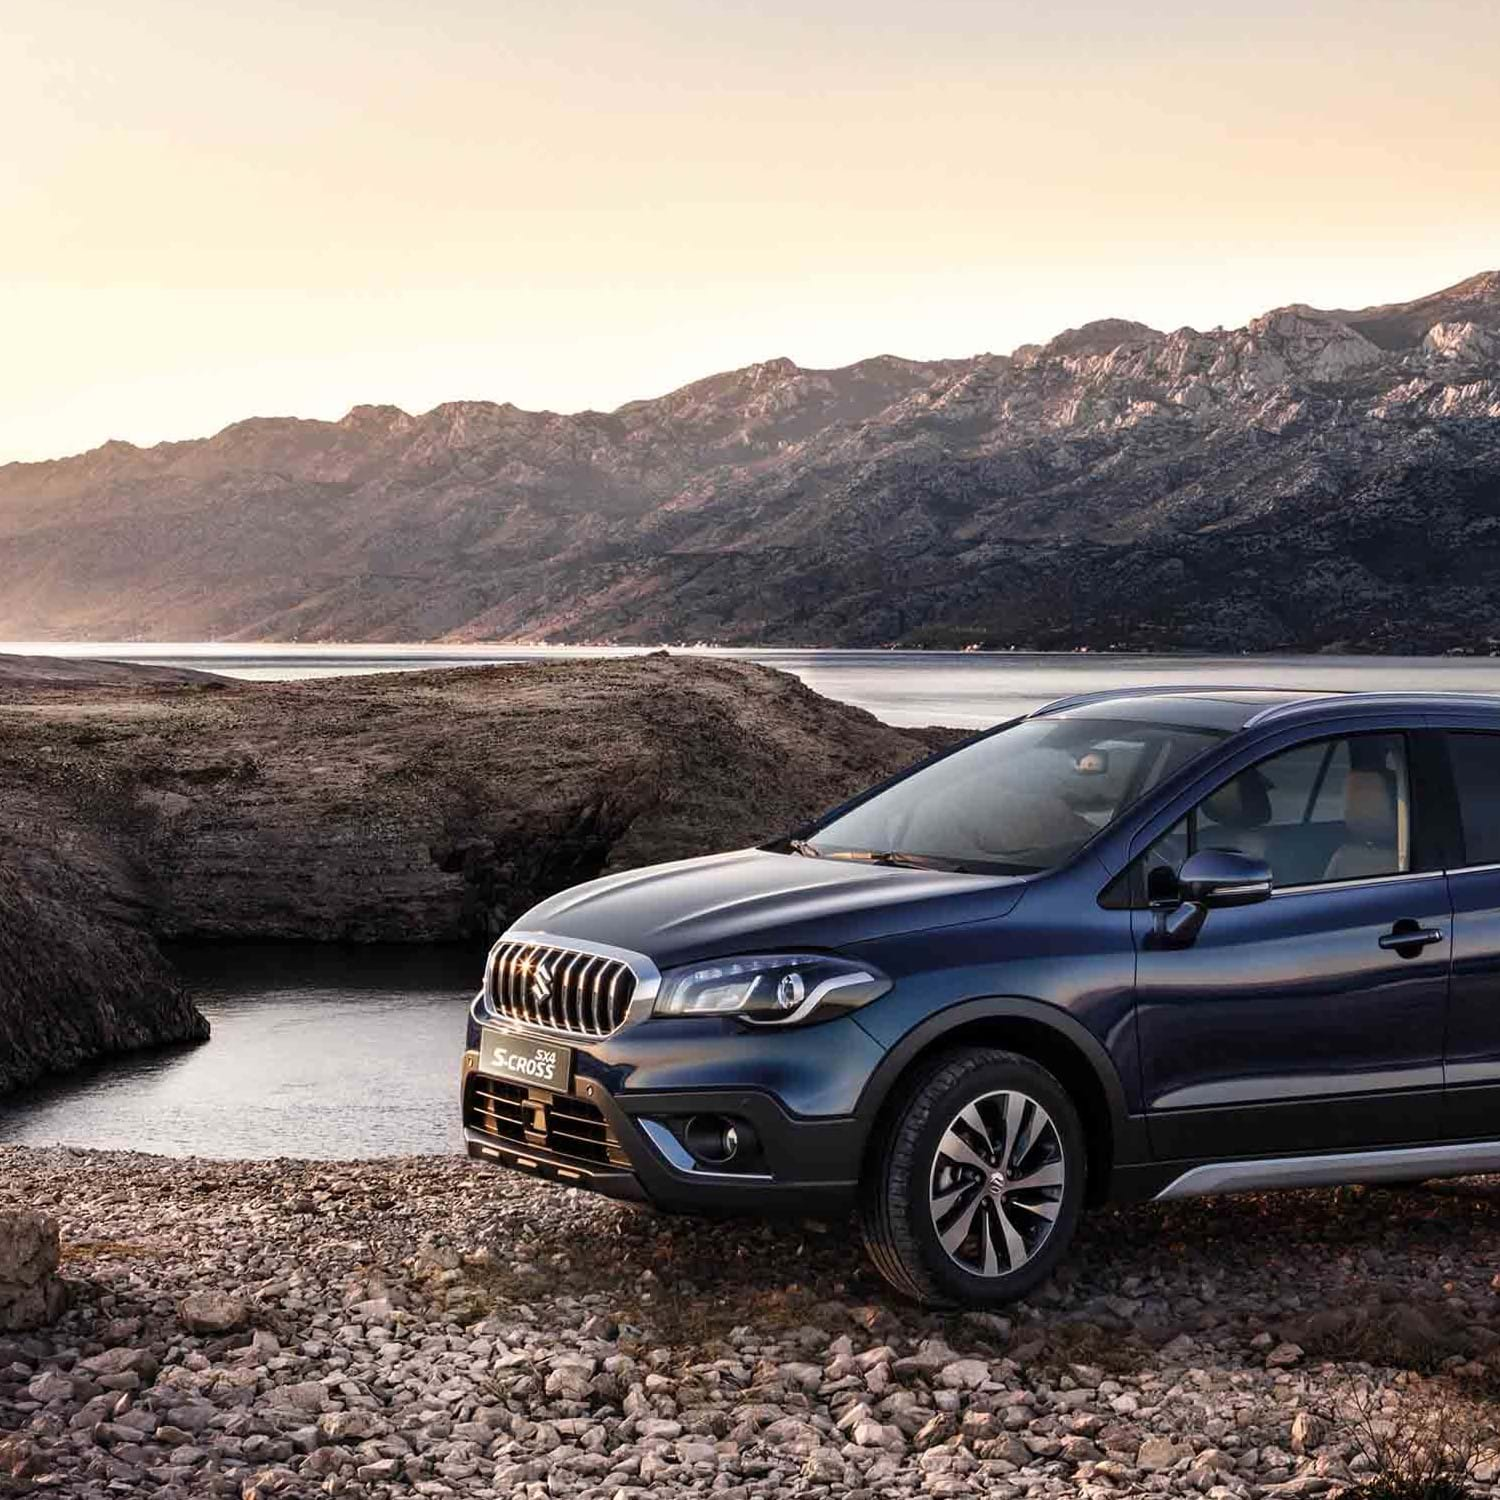 SUVs And Crossover Cars - The Best Compact SUVs